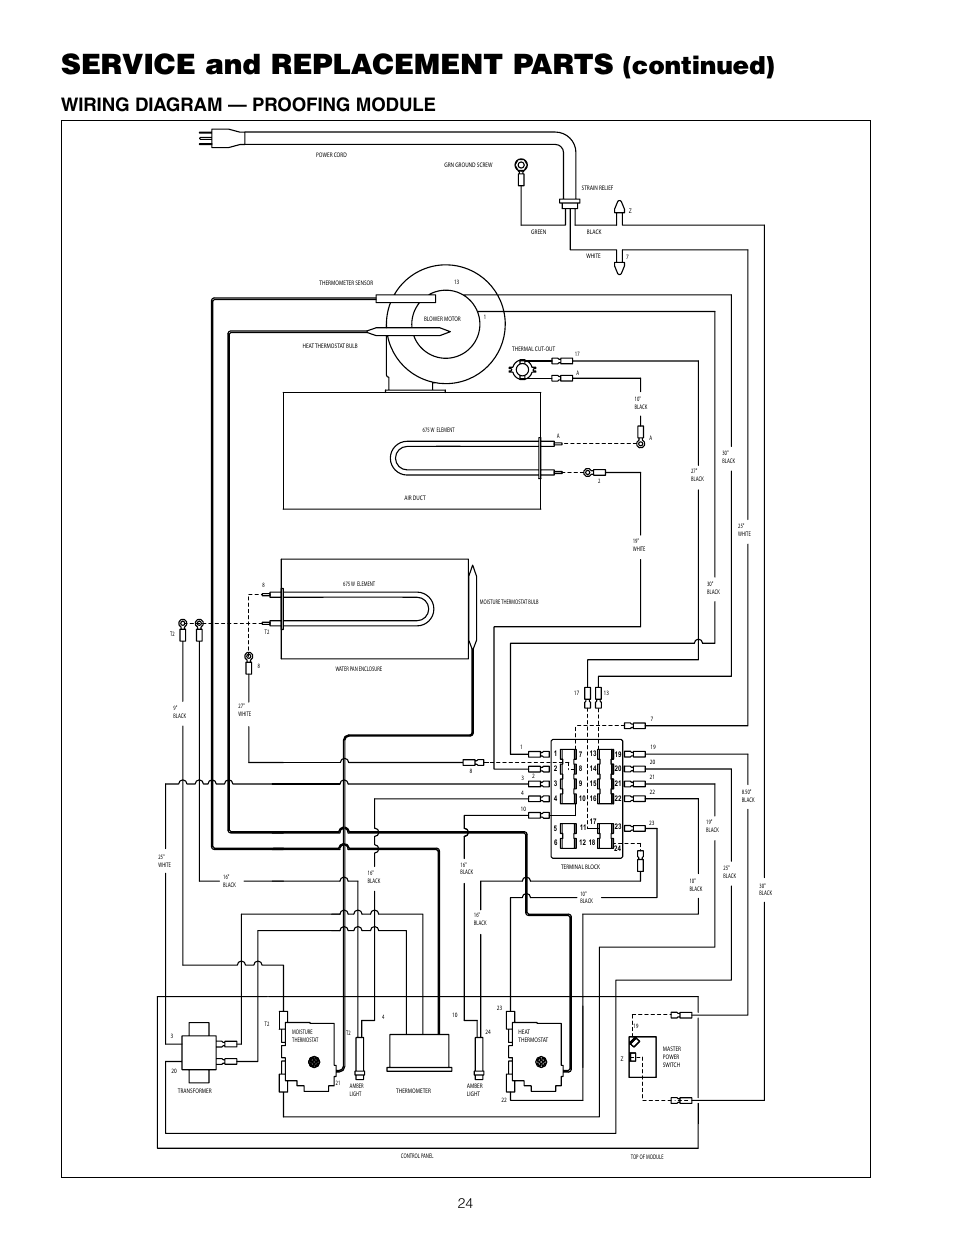 medium resolution of service and replacement parts continued wiring diagram proofing metro c5 wiring diagram for